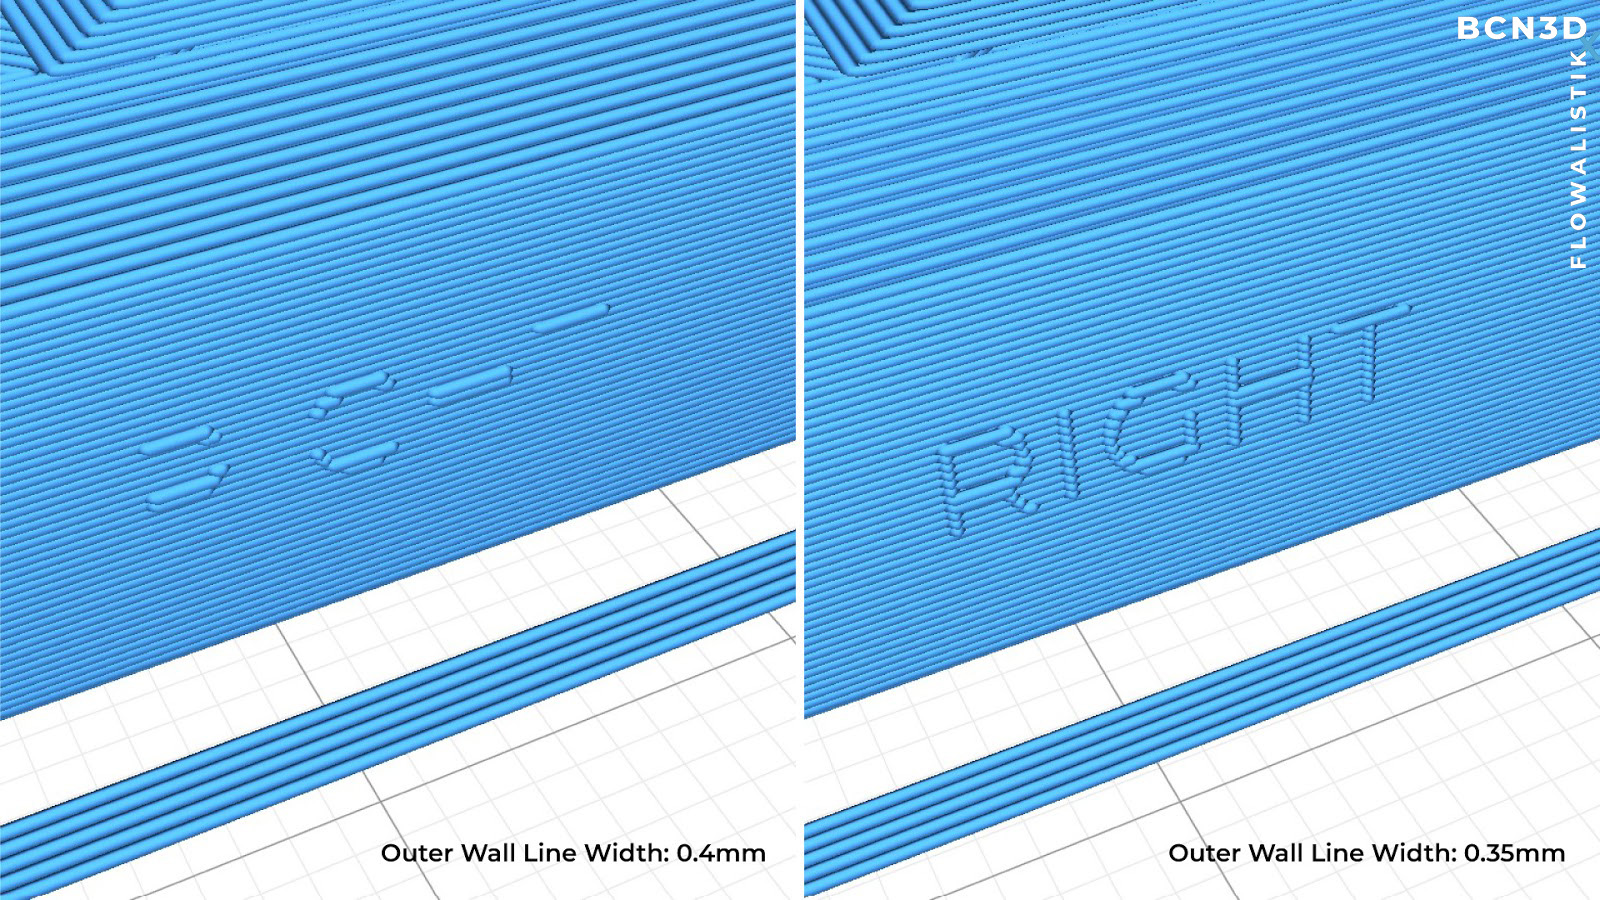 Outer wall line width